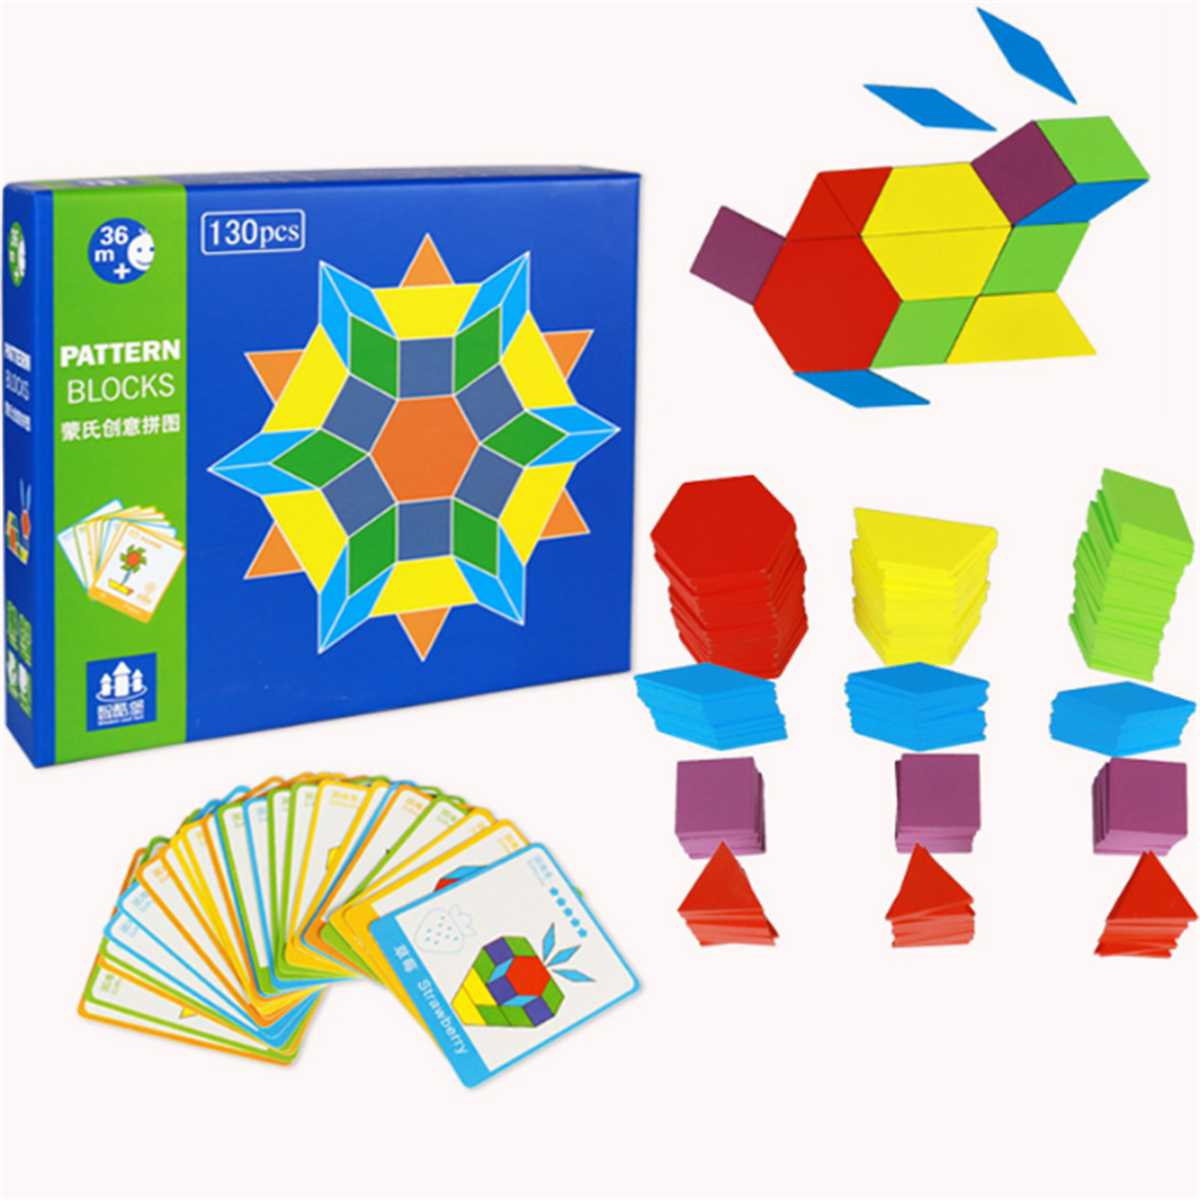 Puzzle Games Educational Toys For Children Jigsaw Puzzle Learning Kids Developing Wooden Toys For Boys Girls